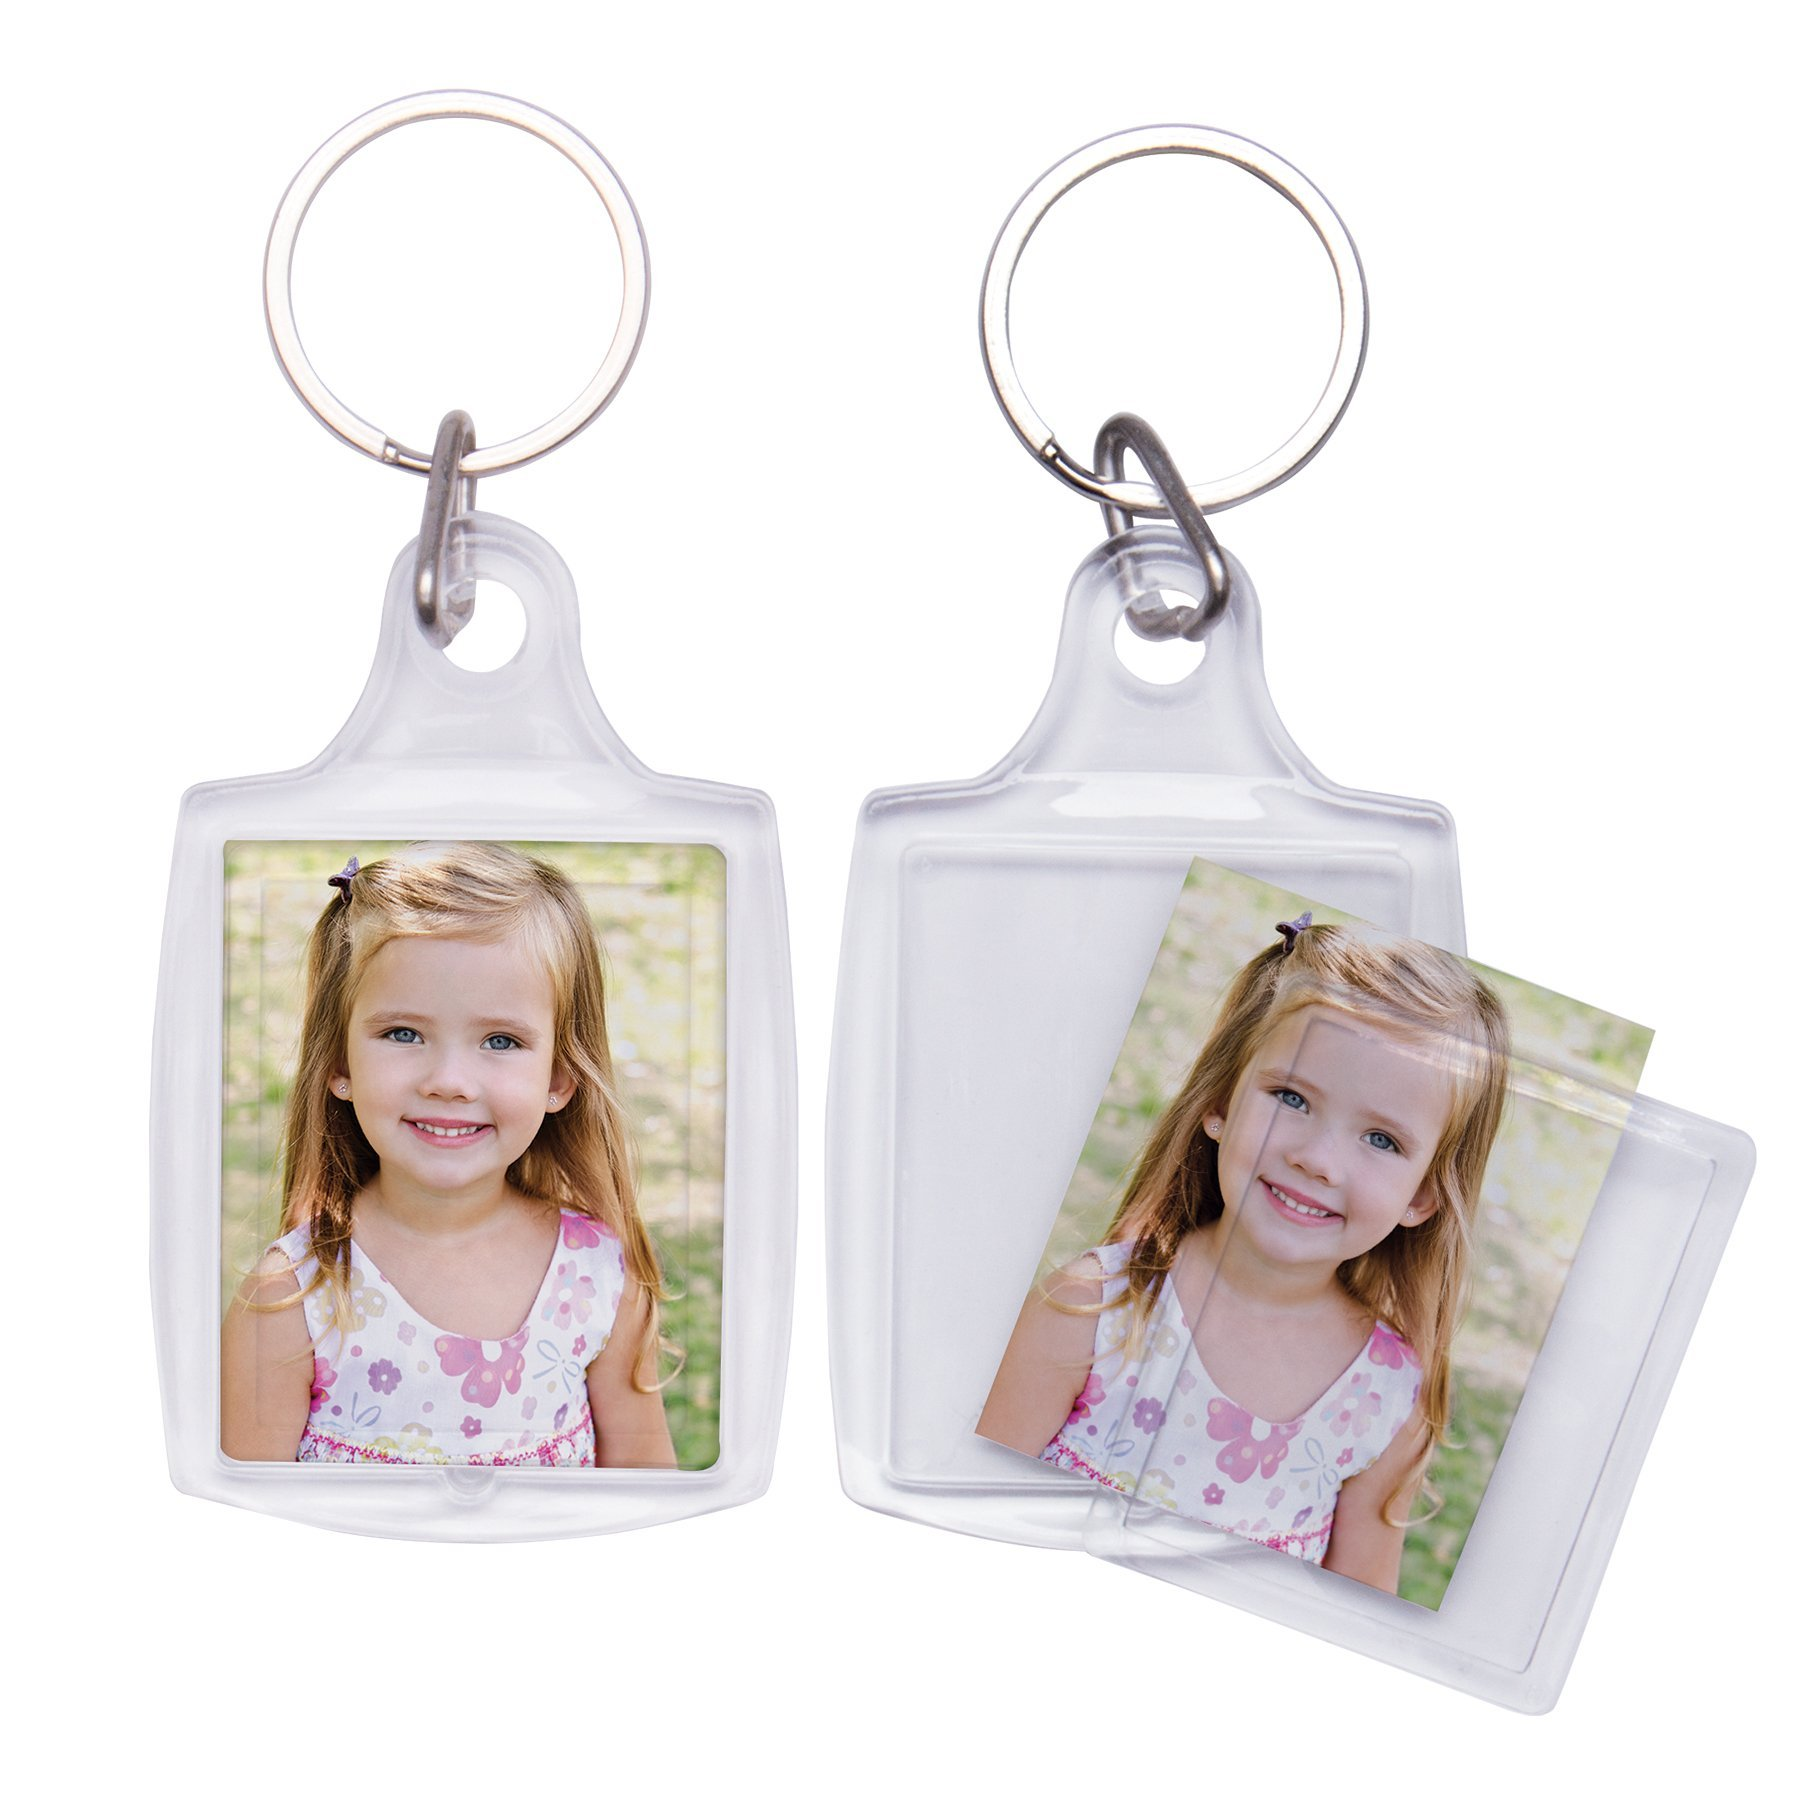 Polybagged Snap-In Photo Keychain - Pack of 100